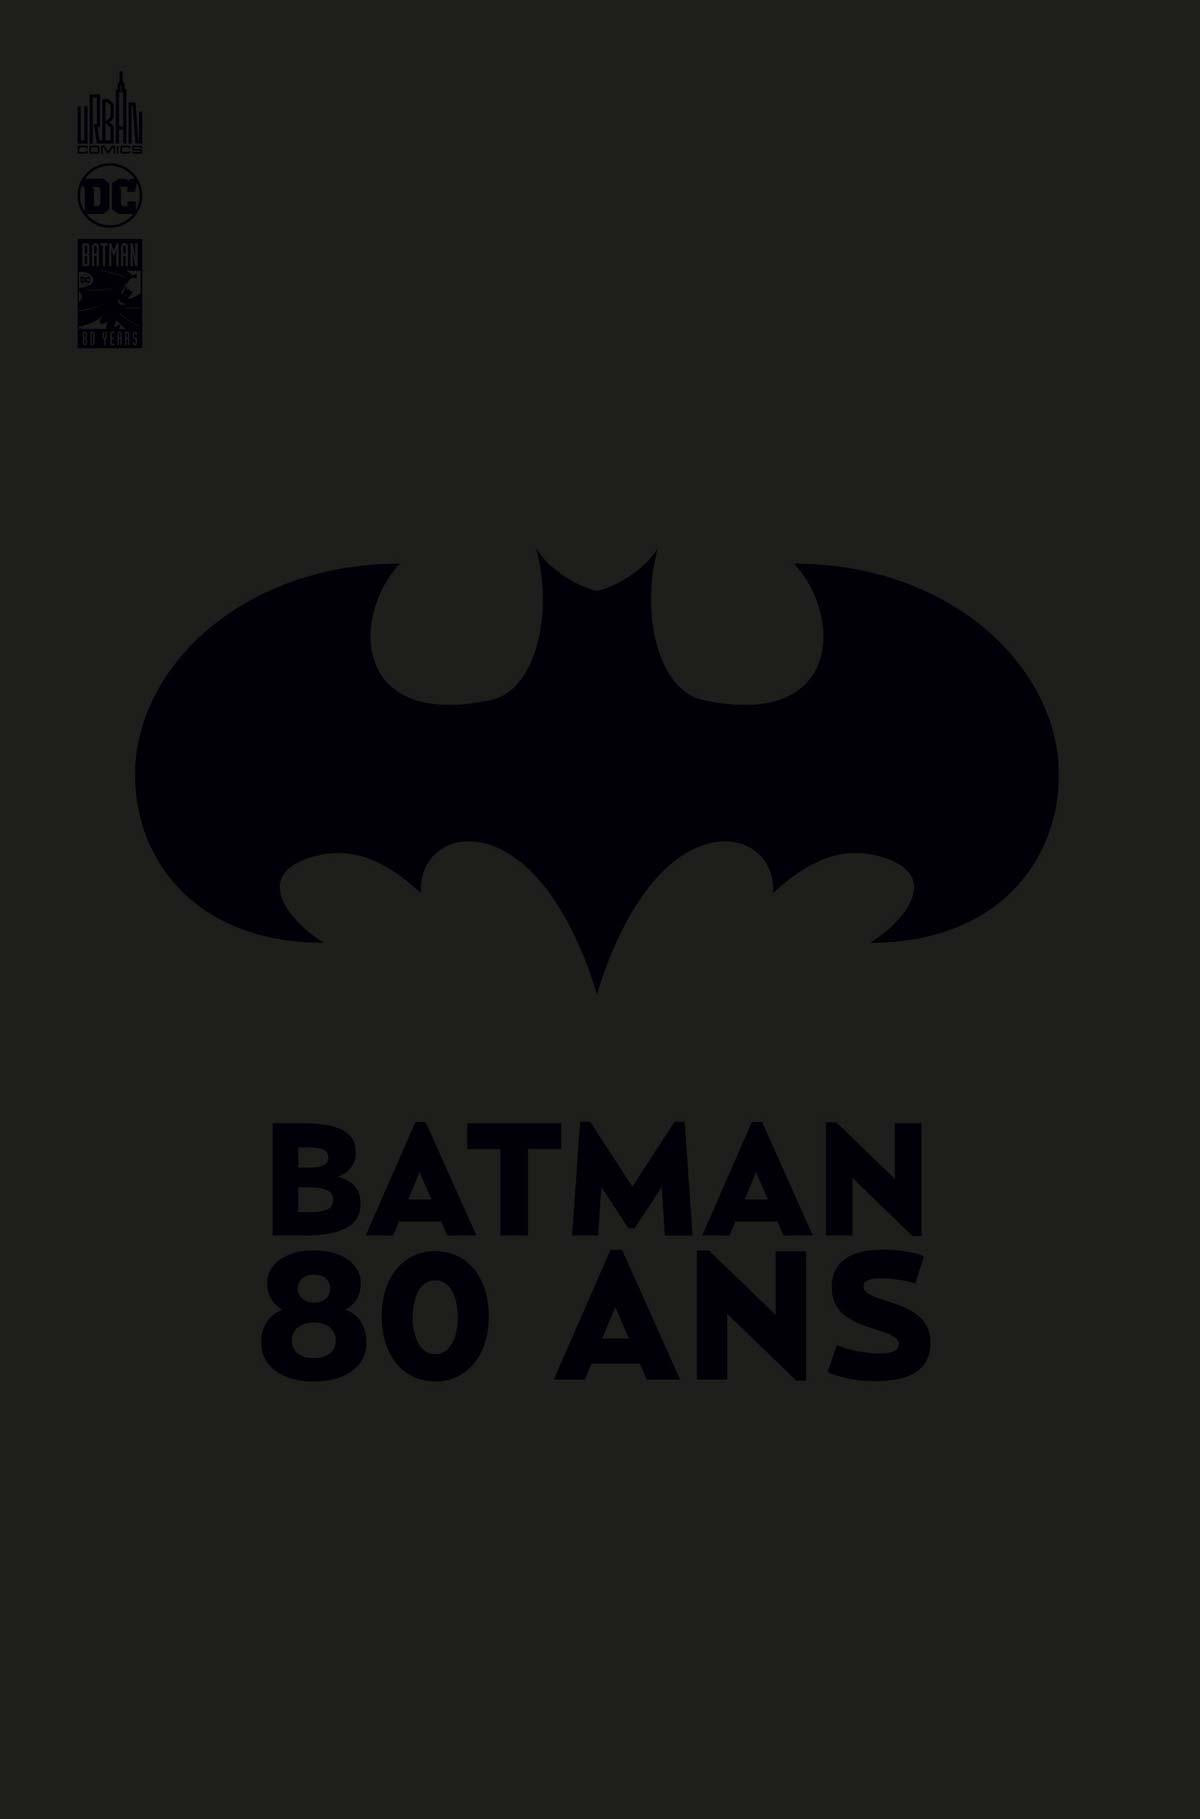 Batman 80 ans 1 - Batman 80 ans